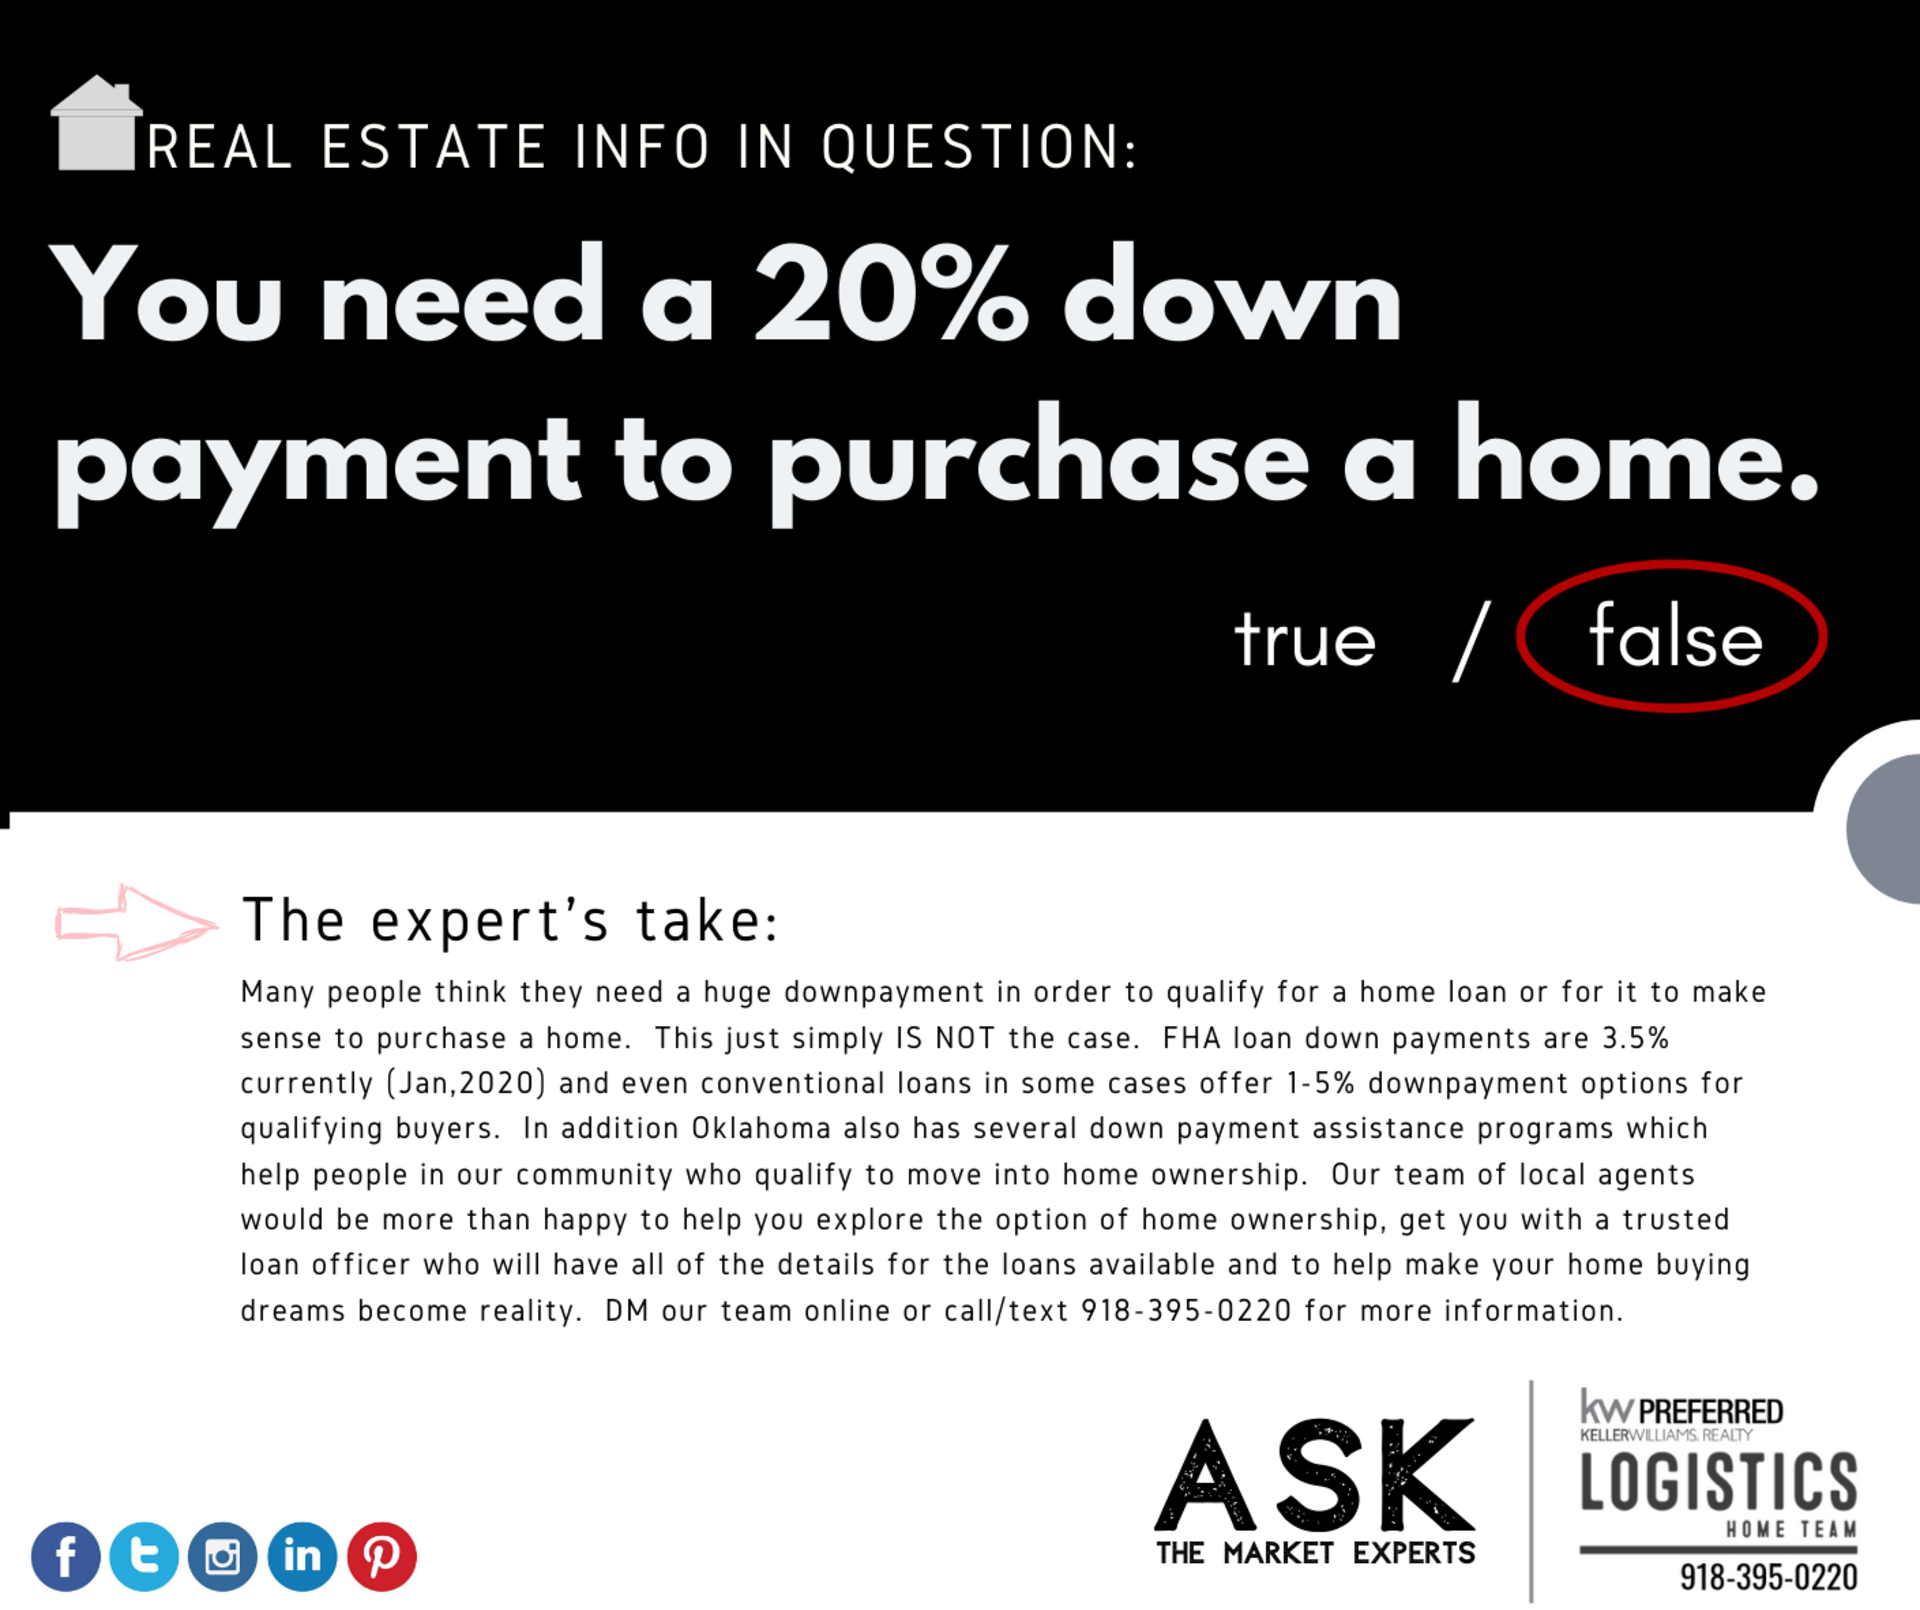 ASK THE EXPERT – Do I need 20% down payment to buy a home?